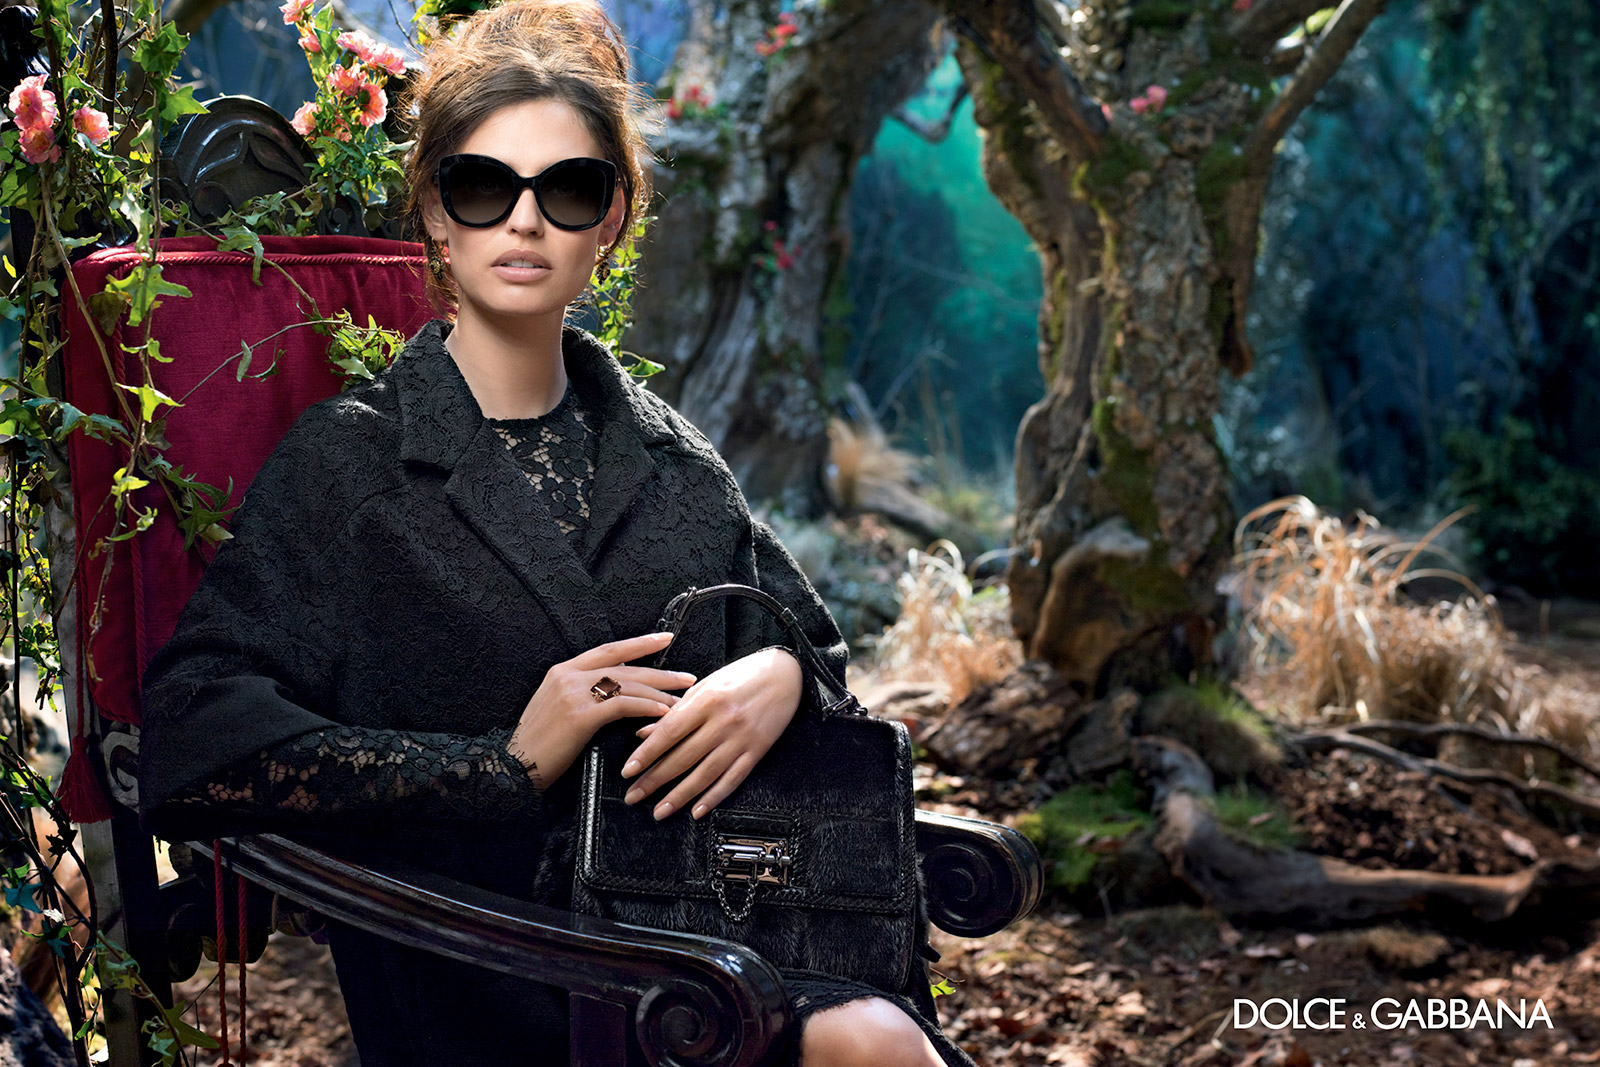 dolce-gabbana-adv-sunglasses-campaign-winter-2015-women-071